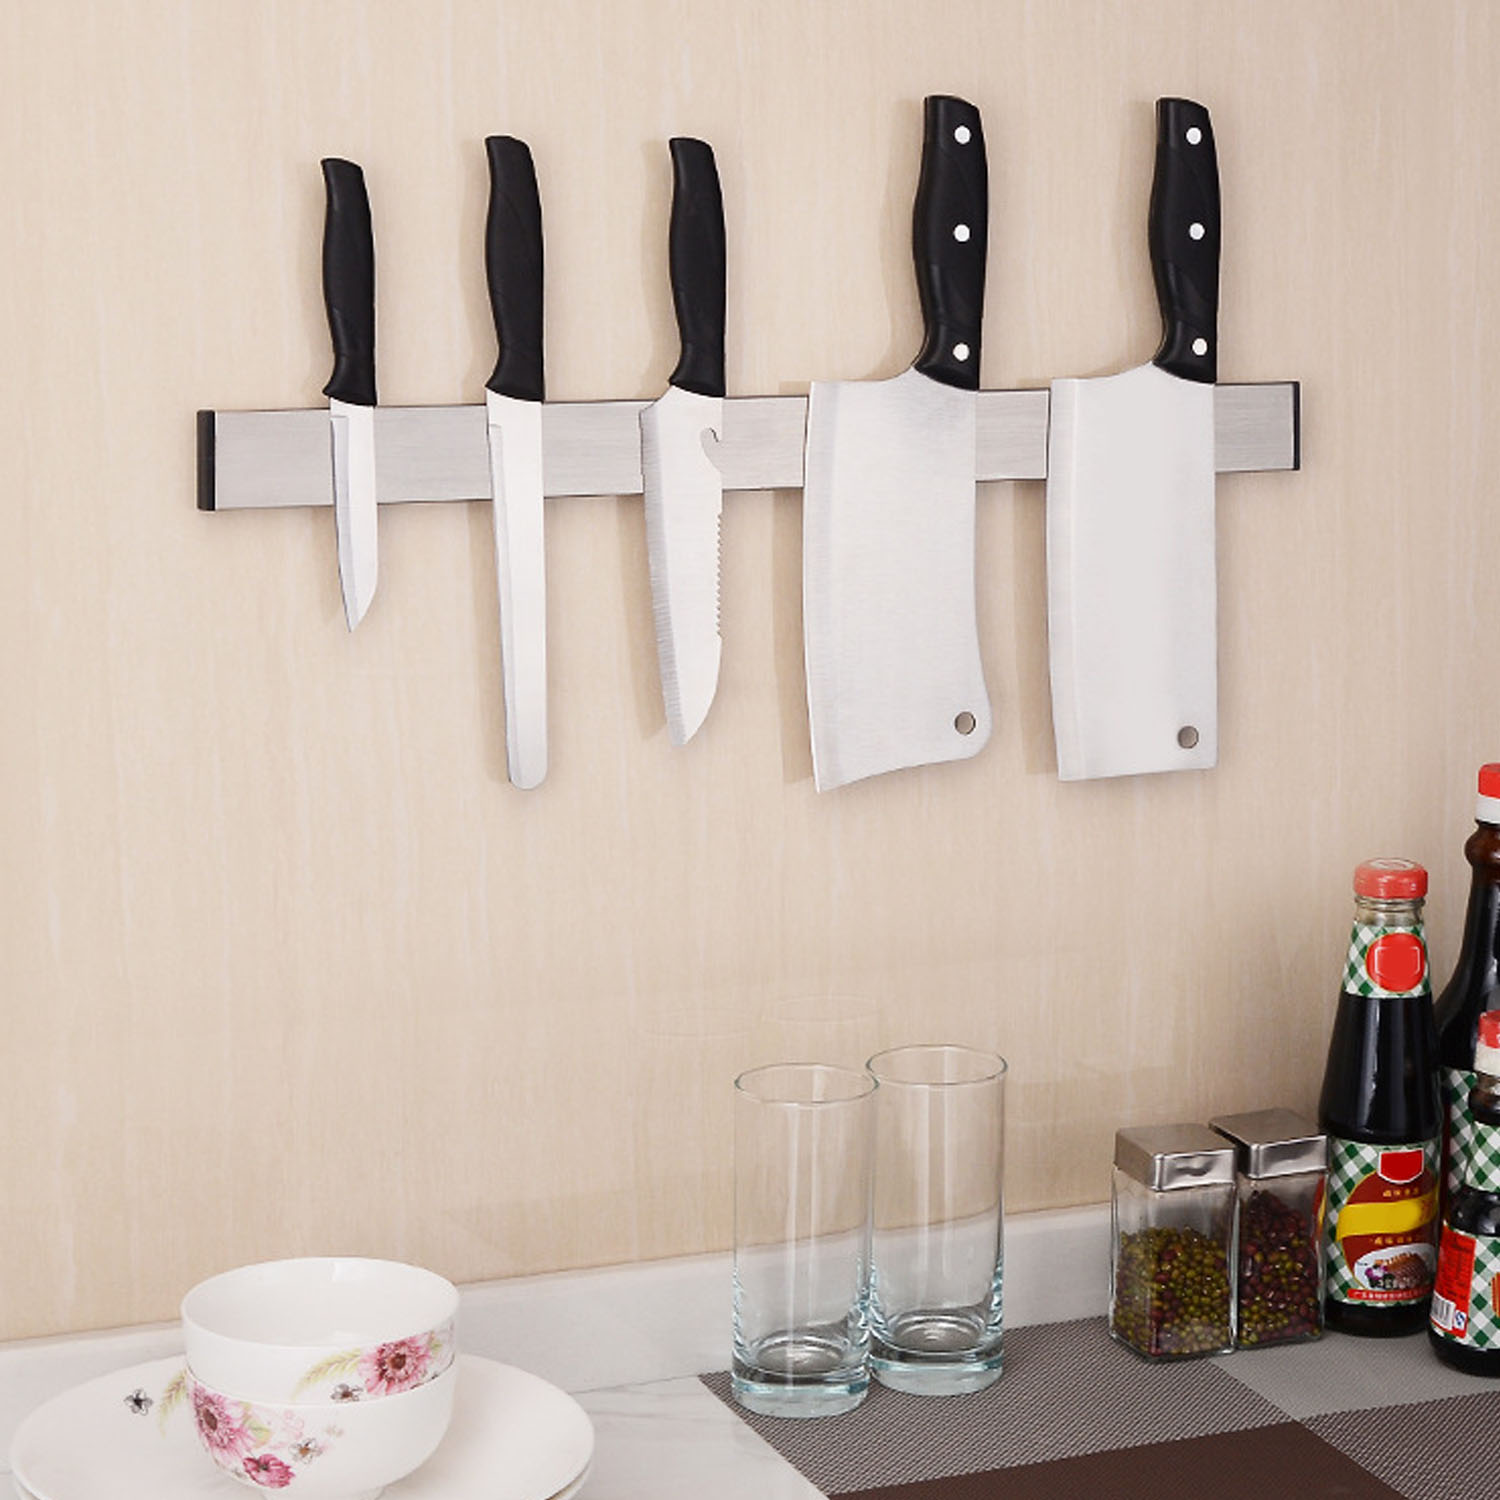 Behogar Magnetic Self-adhesive 12.2 Inches Length Knife Holder Stainless Steel Block Magnet Knife Holder Rack Stand For Knives